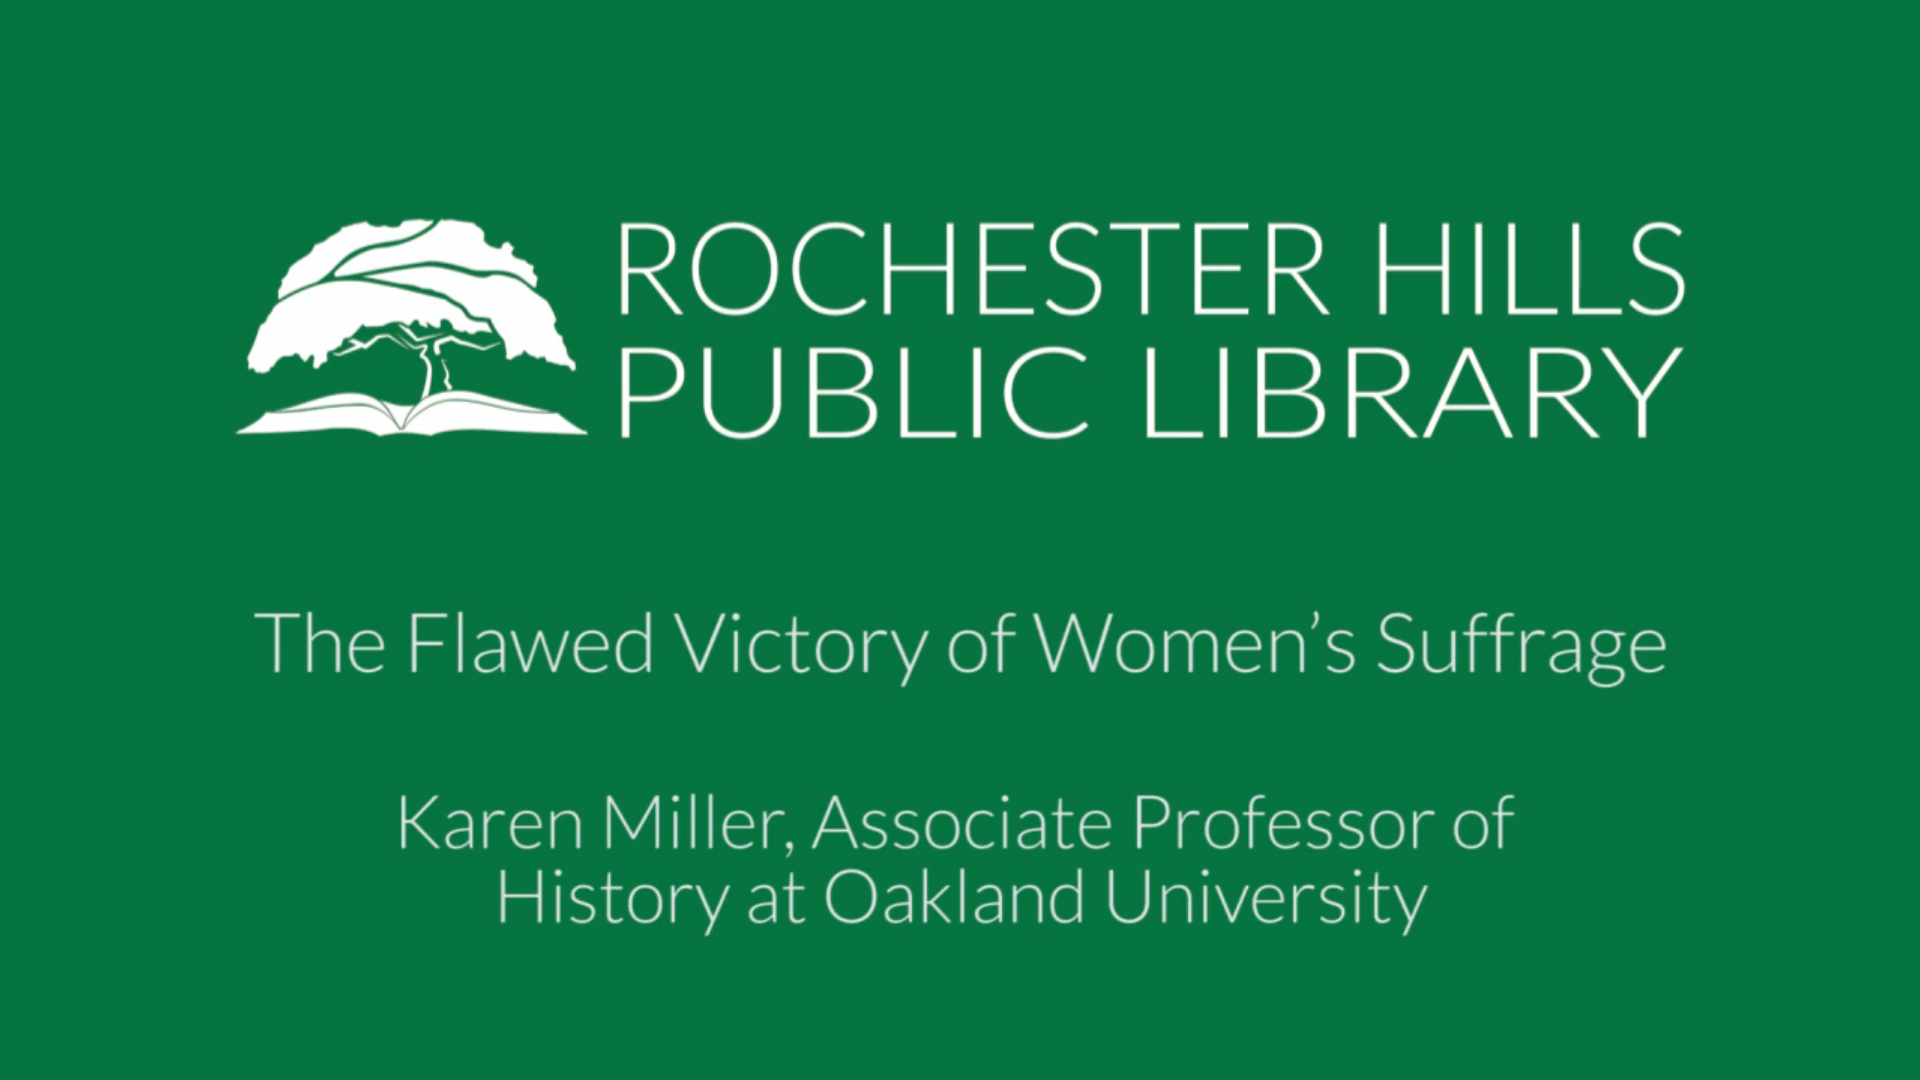 The Flawed Victory of Women's Suffrage, Presented By: Karen A.J. Miller, Sept 15, 2020